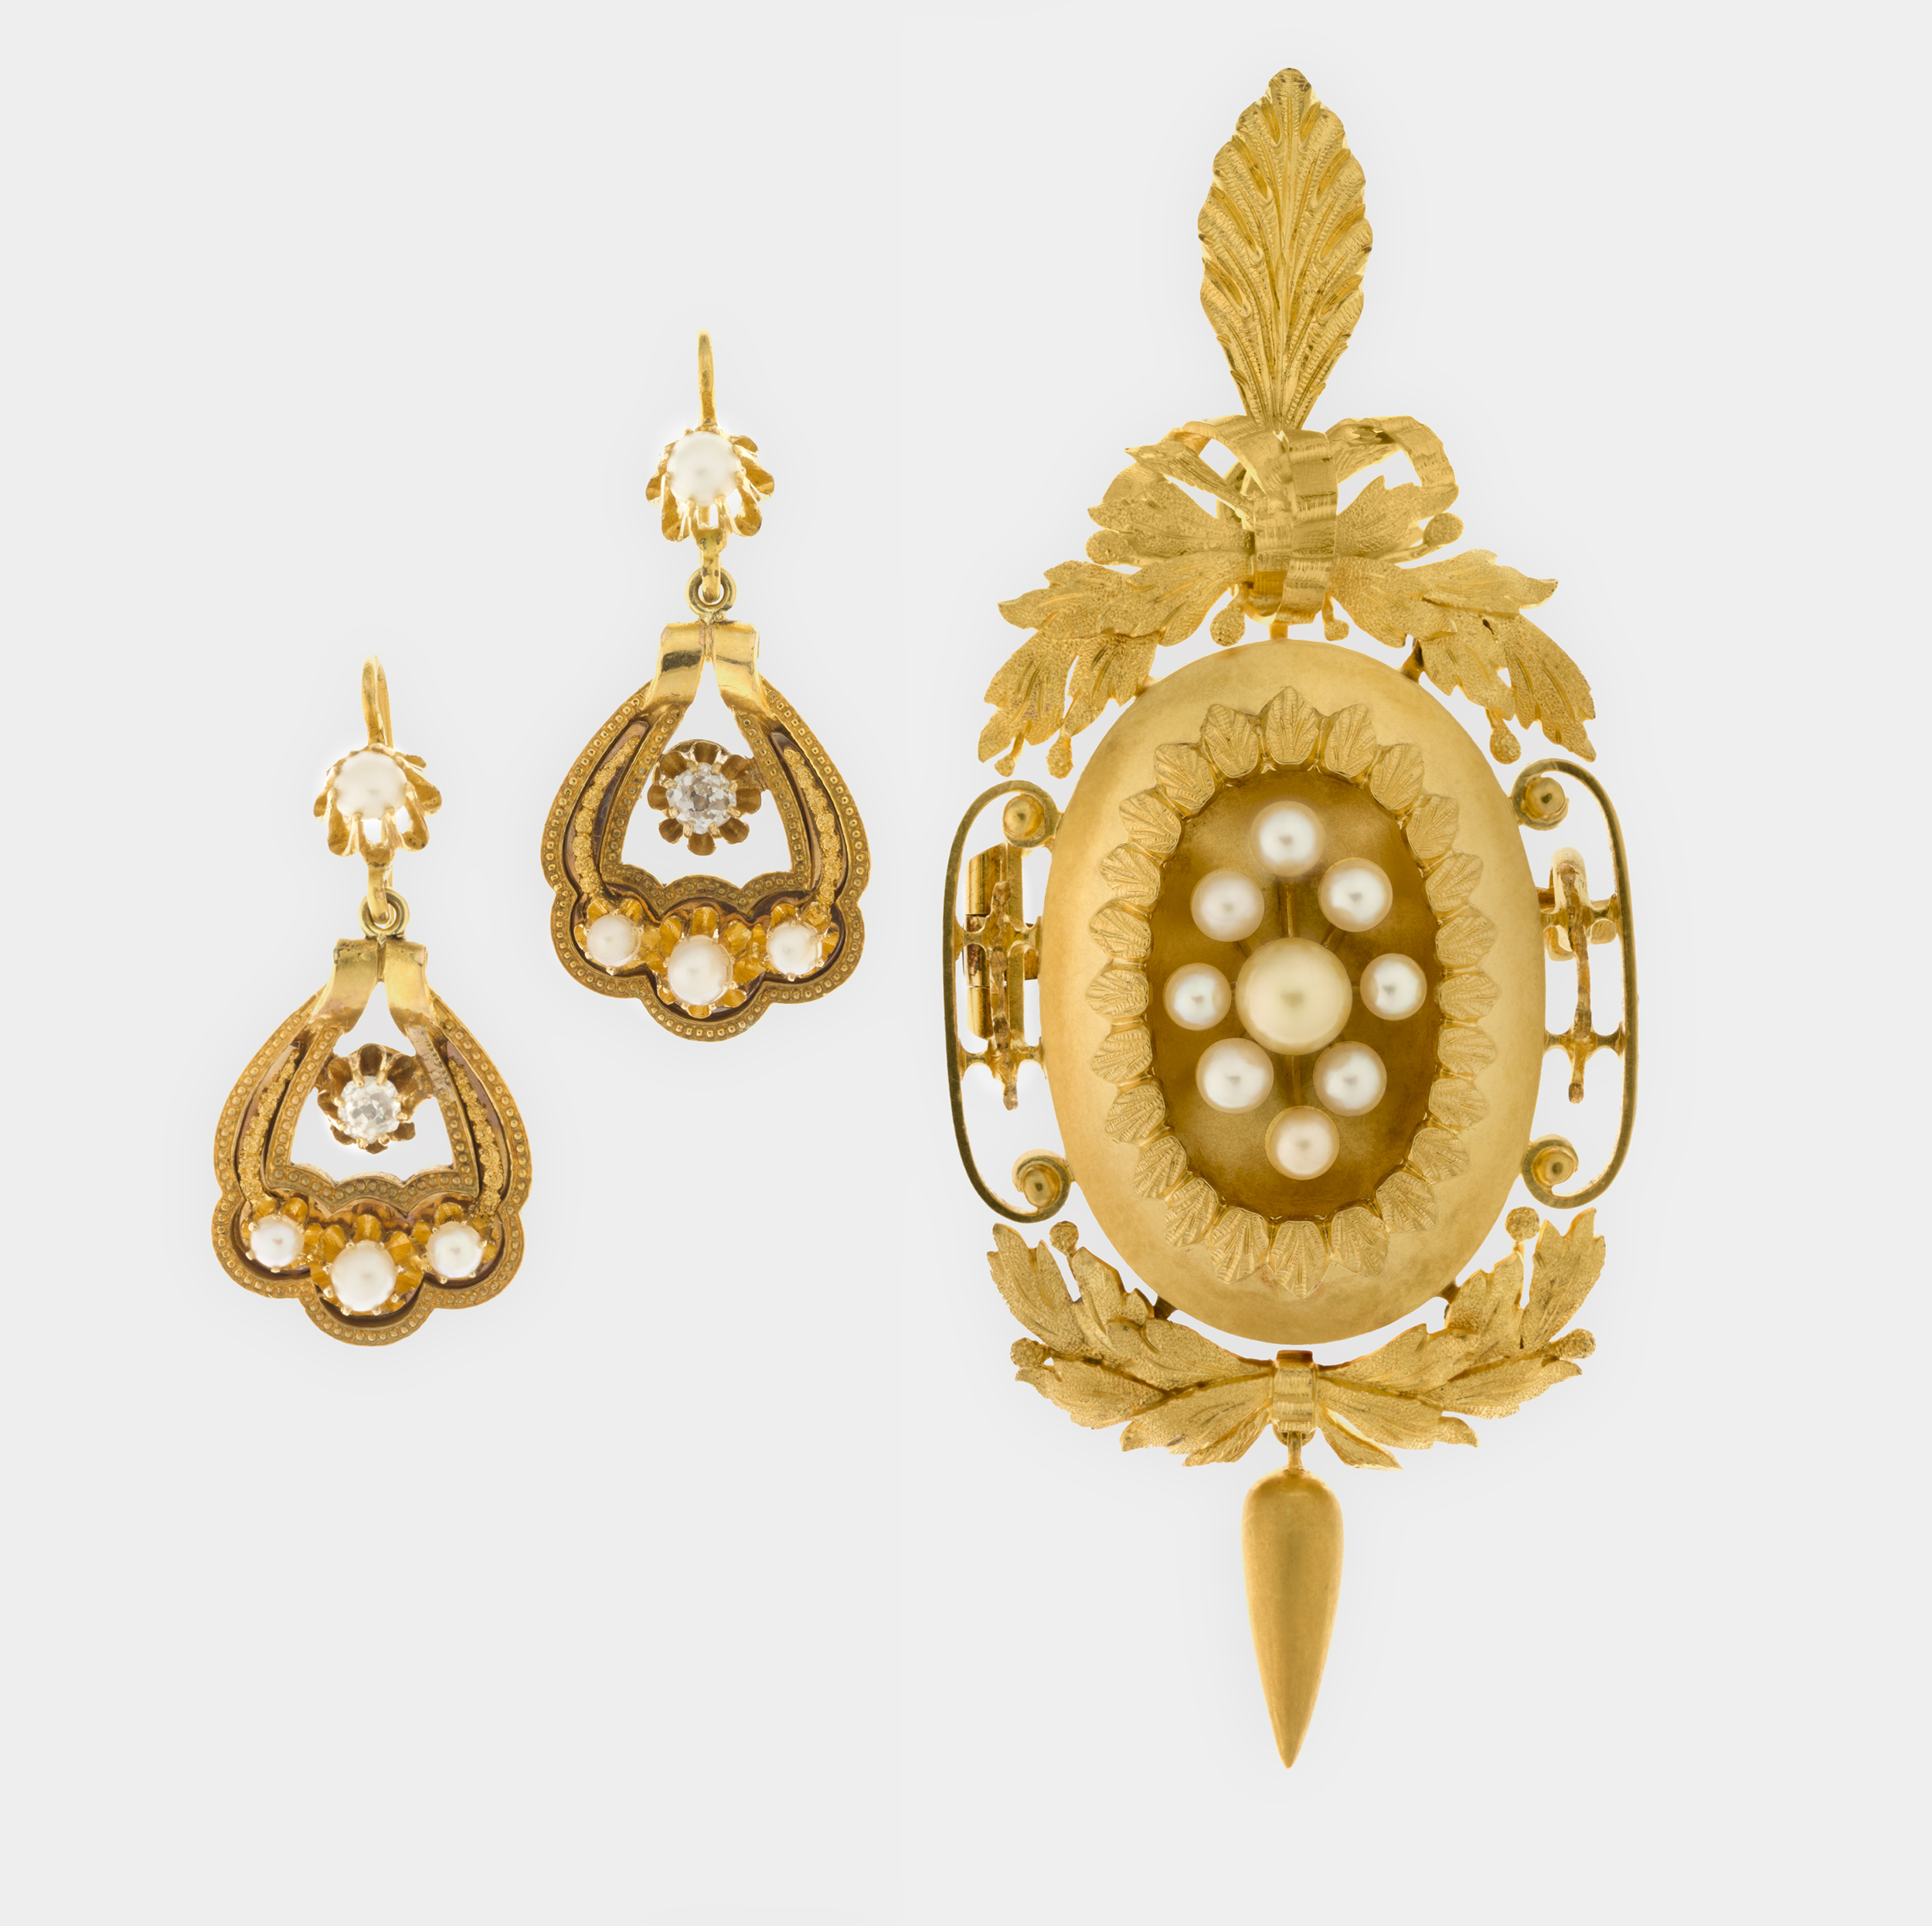 Henry Steiner,  Pendant/brooch and pair of ear pendants set, in fitted case c.1870.18 carat gold, seed pearls, diamonds.National Gallery of Australia, Canberra.Purchased 2012